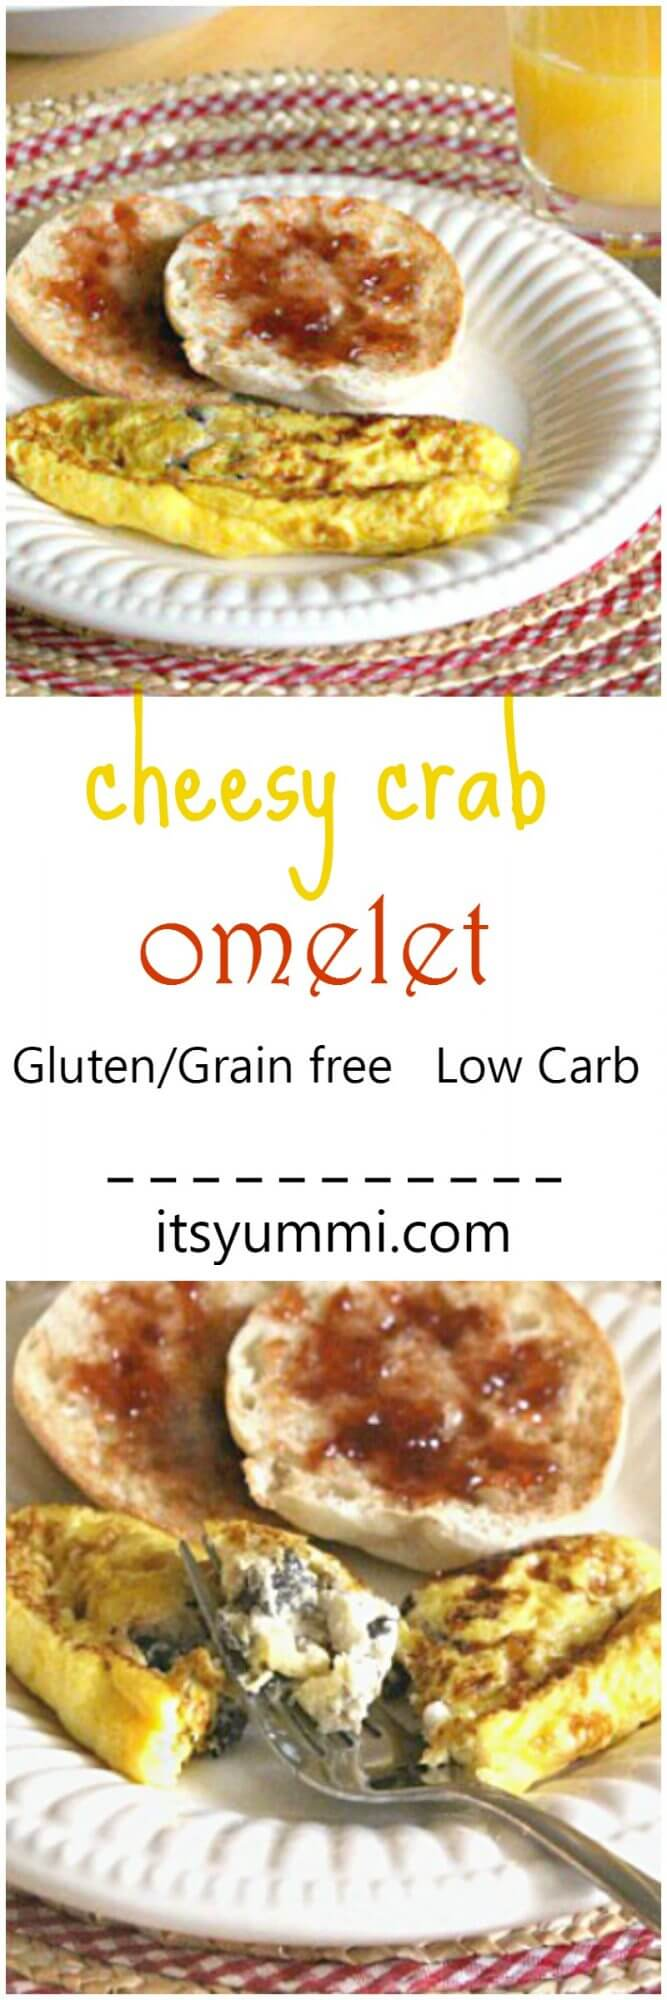 Cheesy Crab Omelet Recipe photo collage